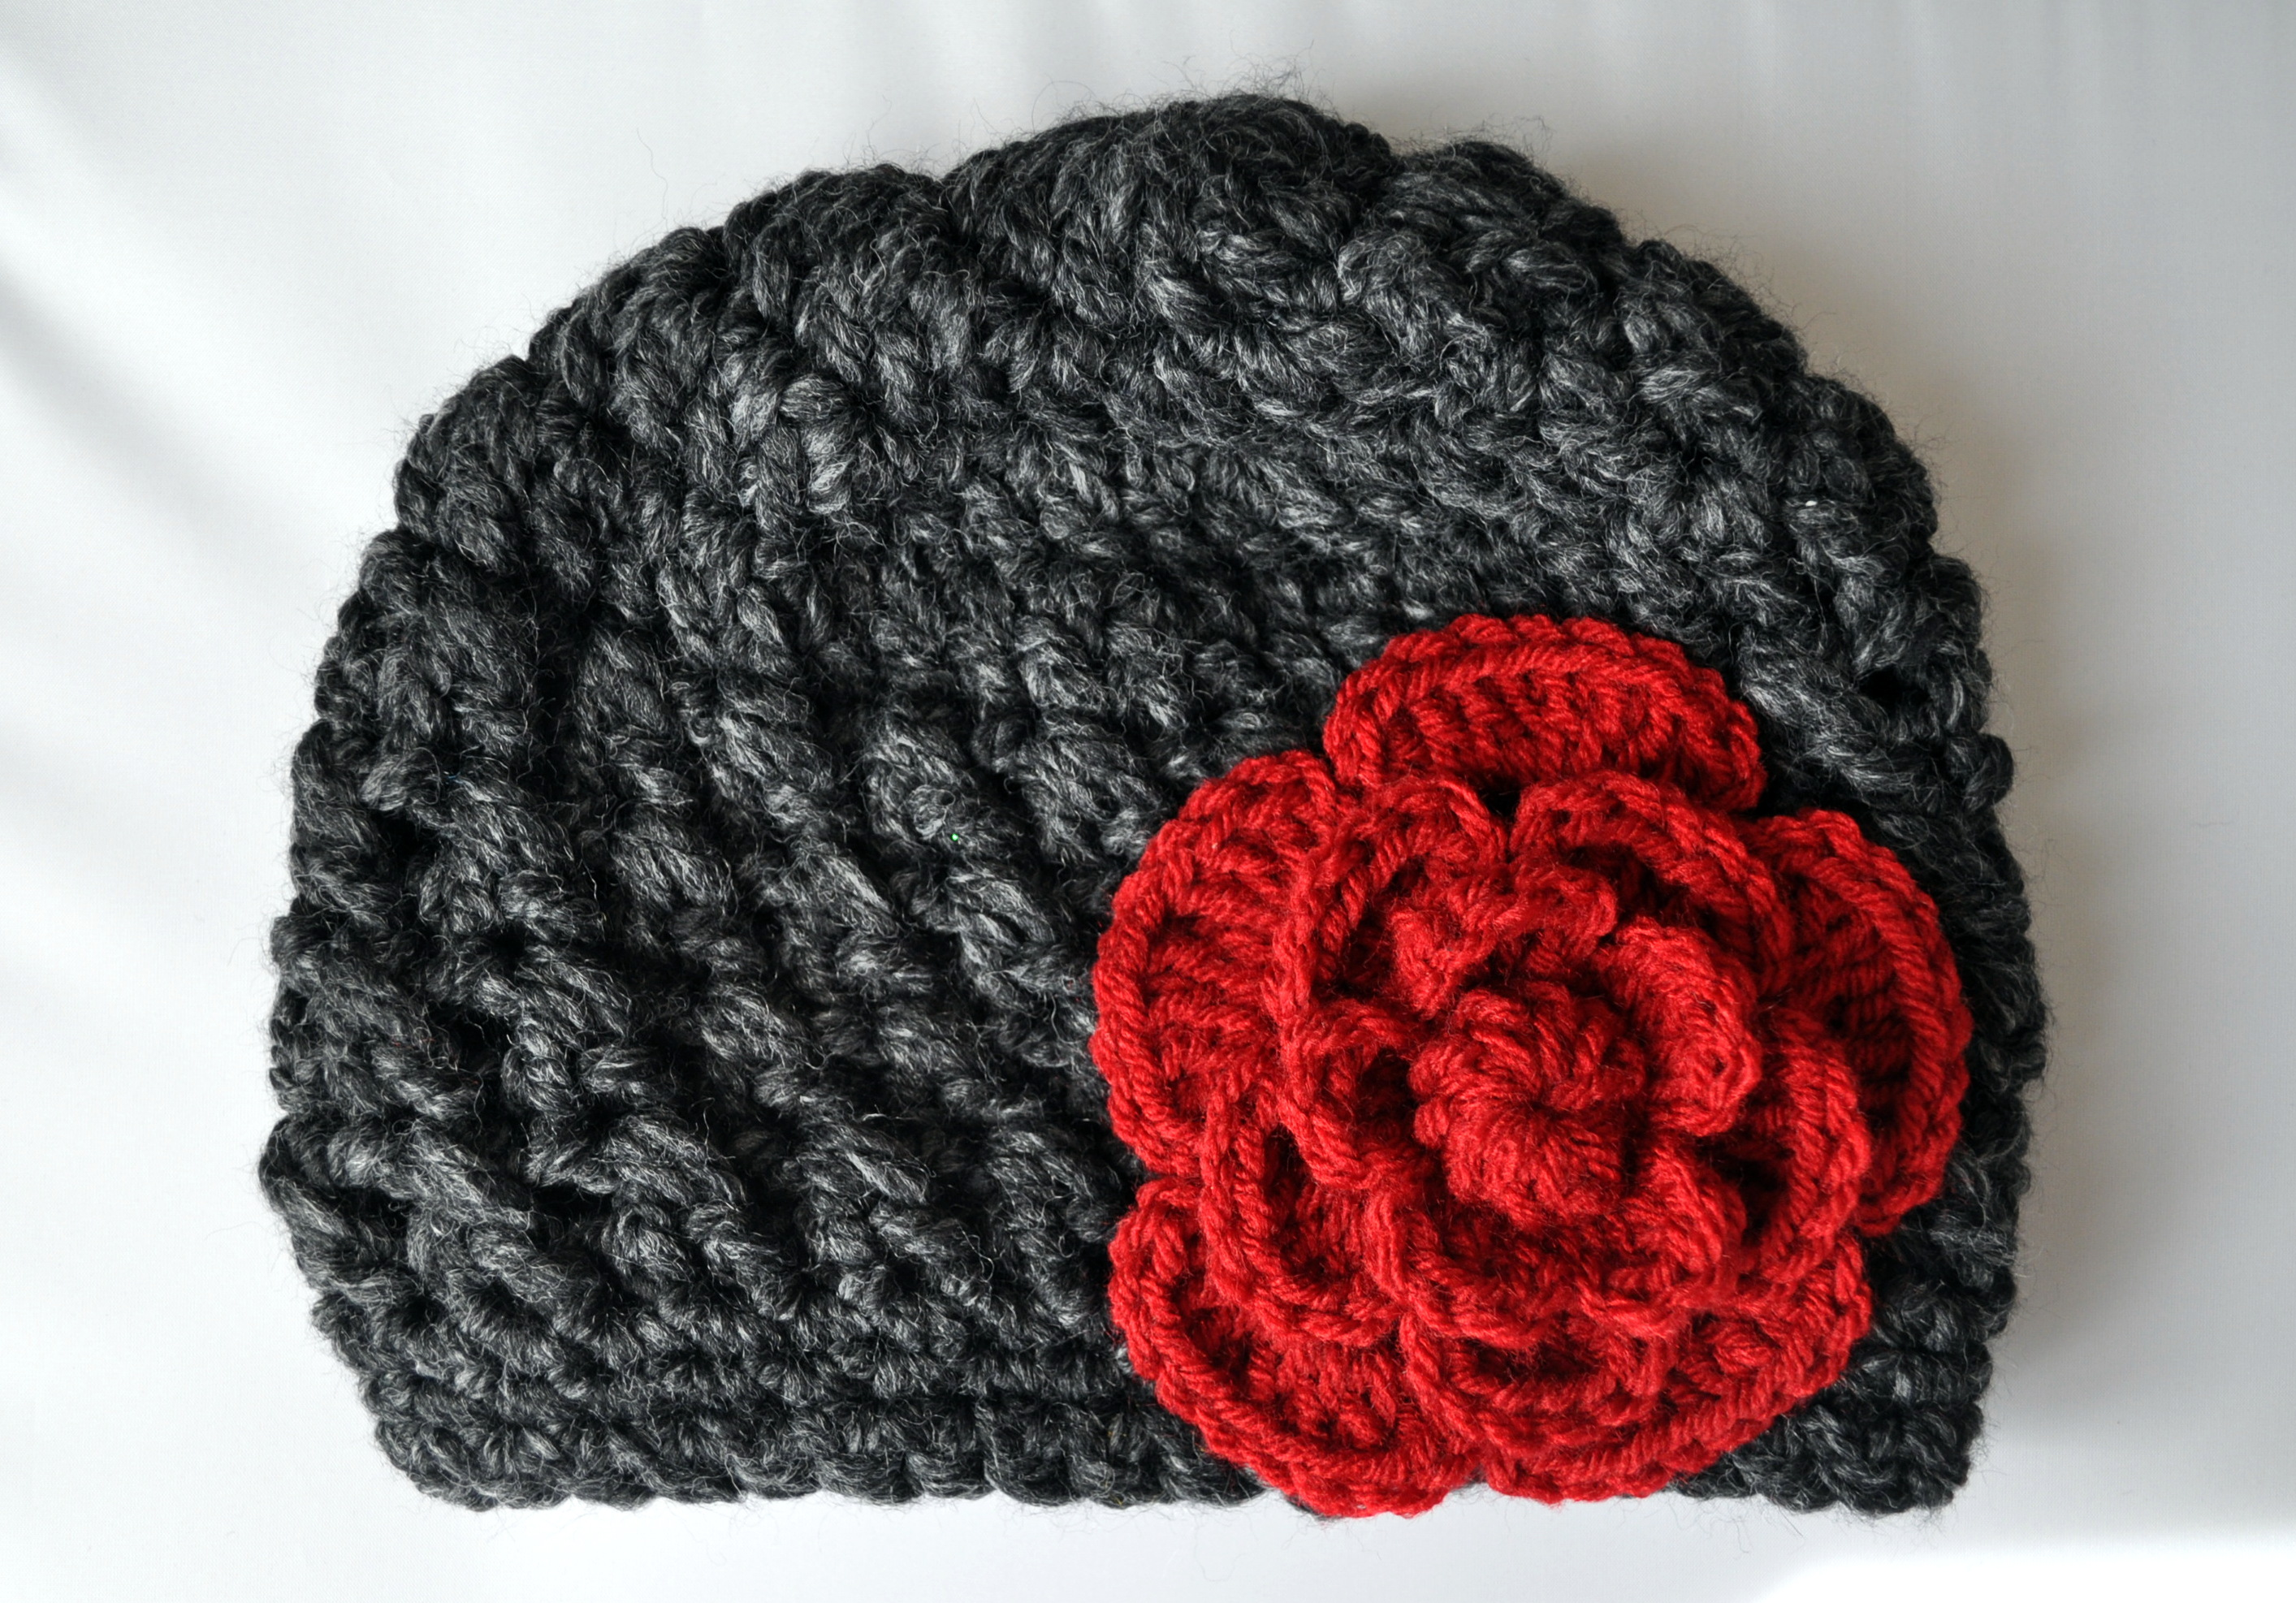 Crochet Patterns Chunky Yarn : Crochet Chunky Flowered Cloche Pattern Classy Crochet